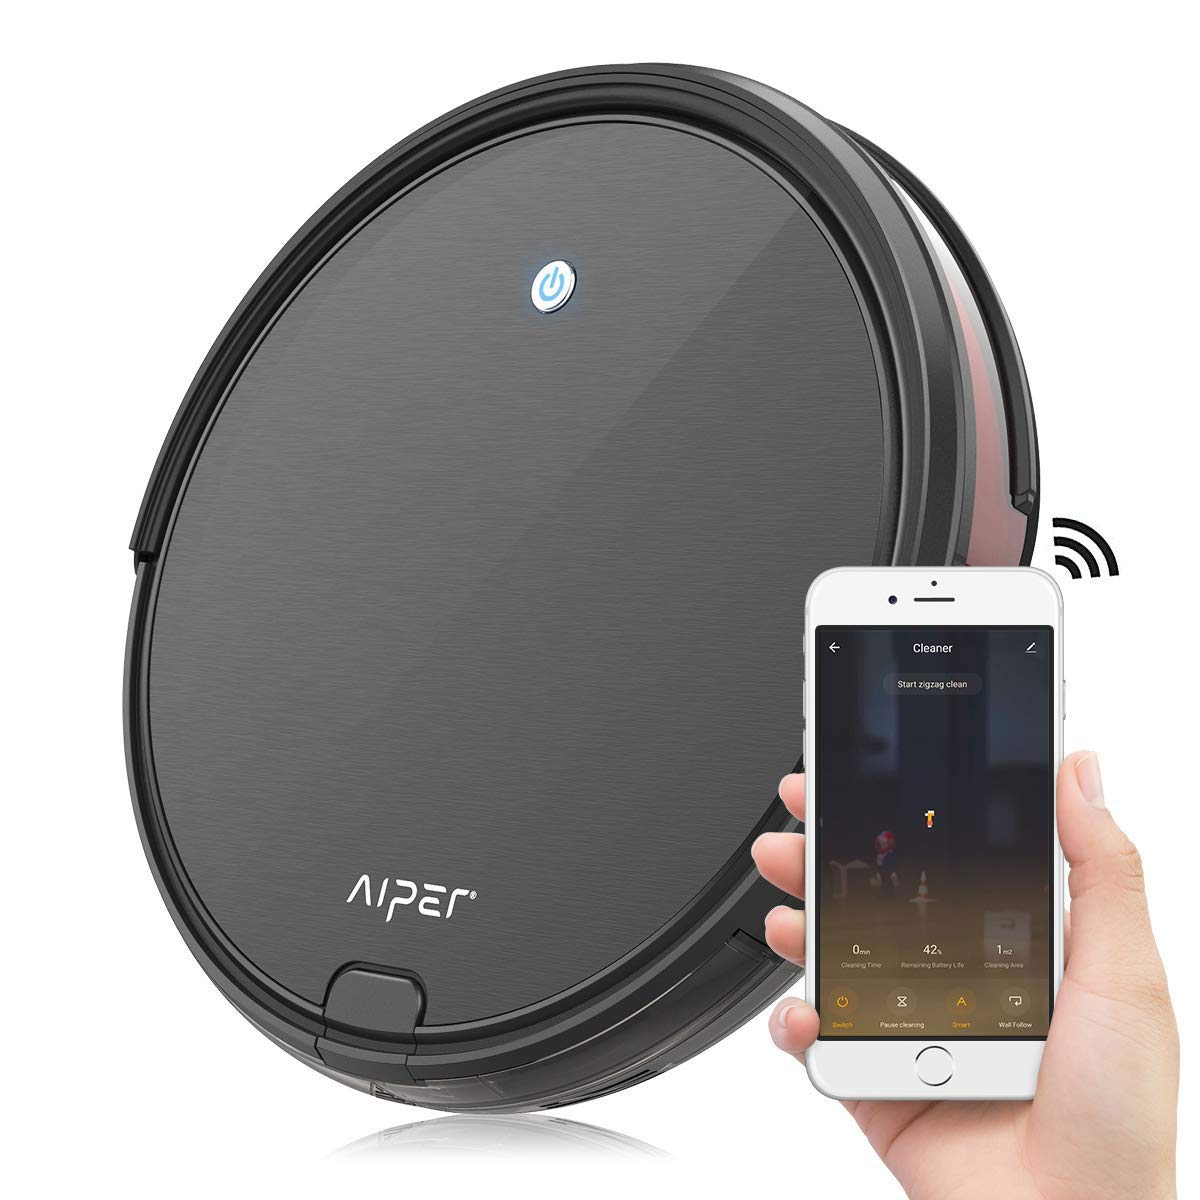 Aiper Robot Vacuum Cleaner, 1800Pa Strong Suction, 2.6inch Super Thin, Wi-Fi Connectivity, Compatible with Alexa, Self-Charging Robotic Vacuum, Good for Pet Hair, Carpets, Hard Floors